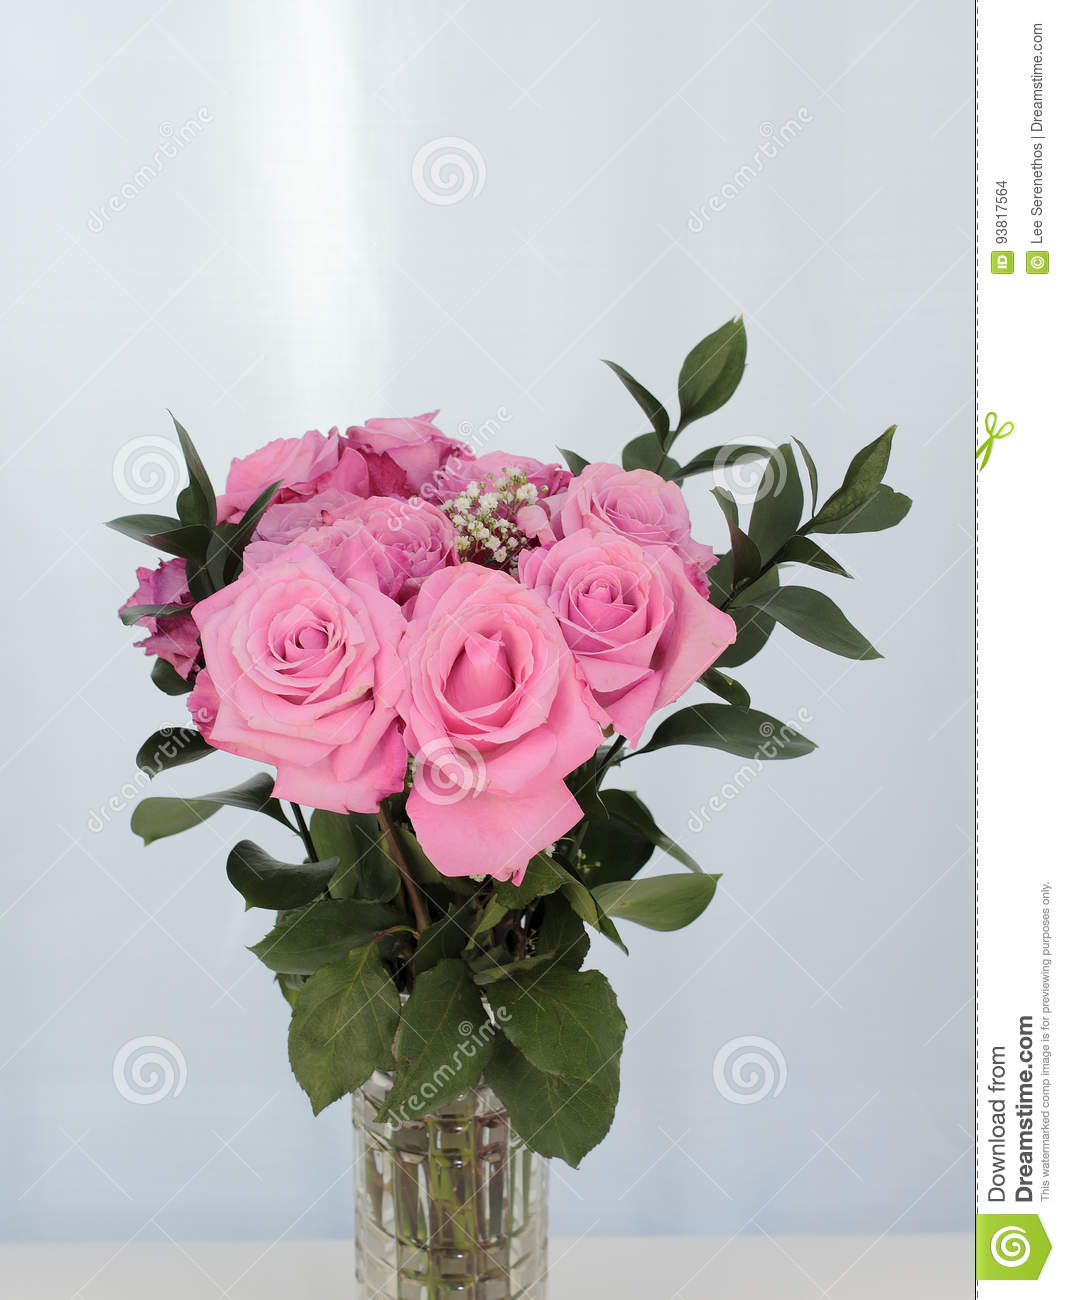 Vibrant Bouquet Of Beautiful Pink Roses Stock Photo Image Of Close